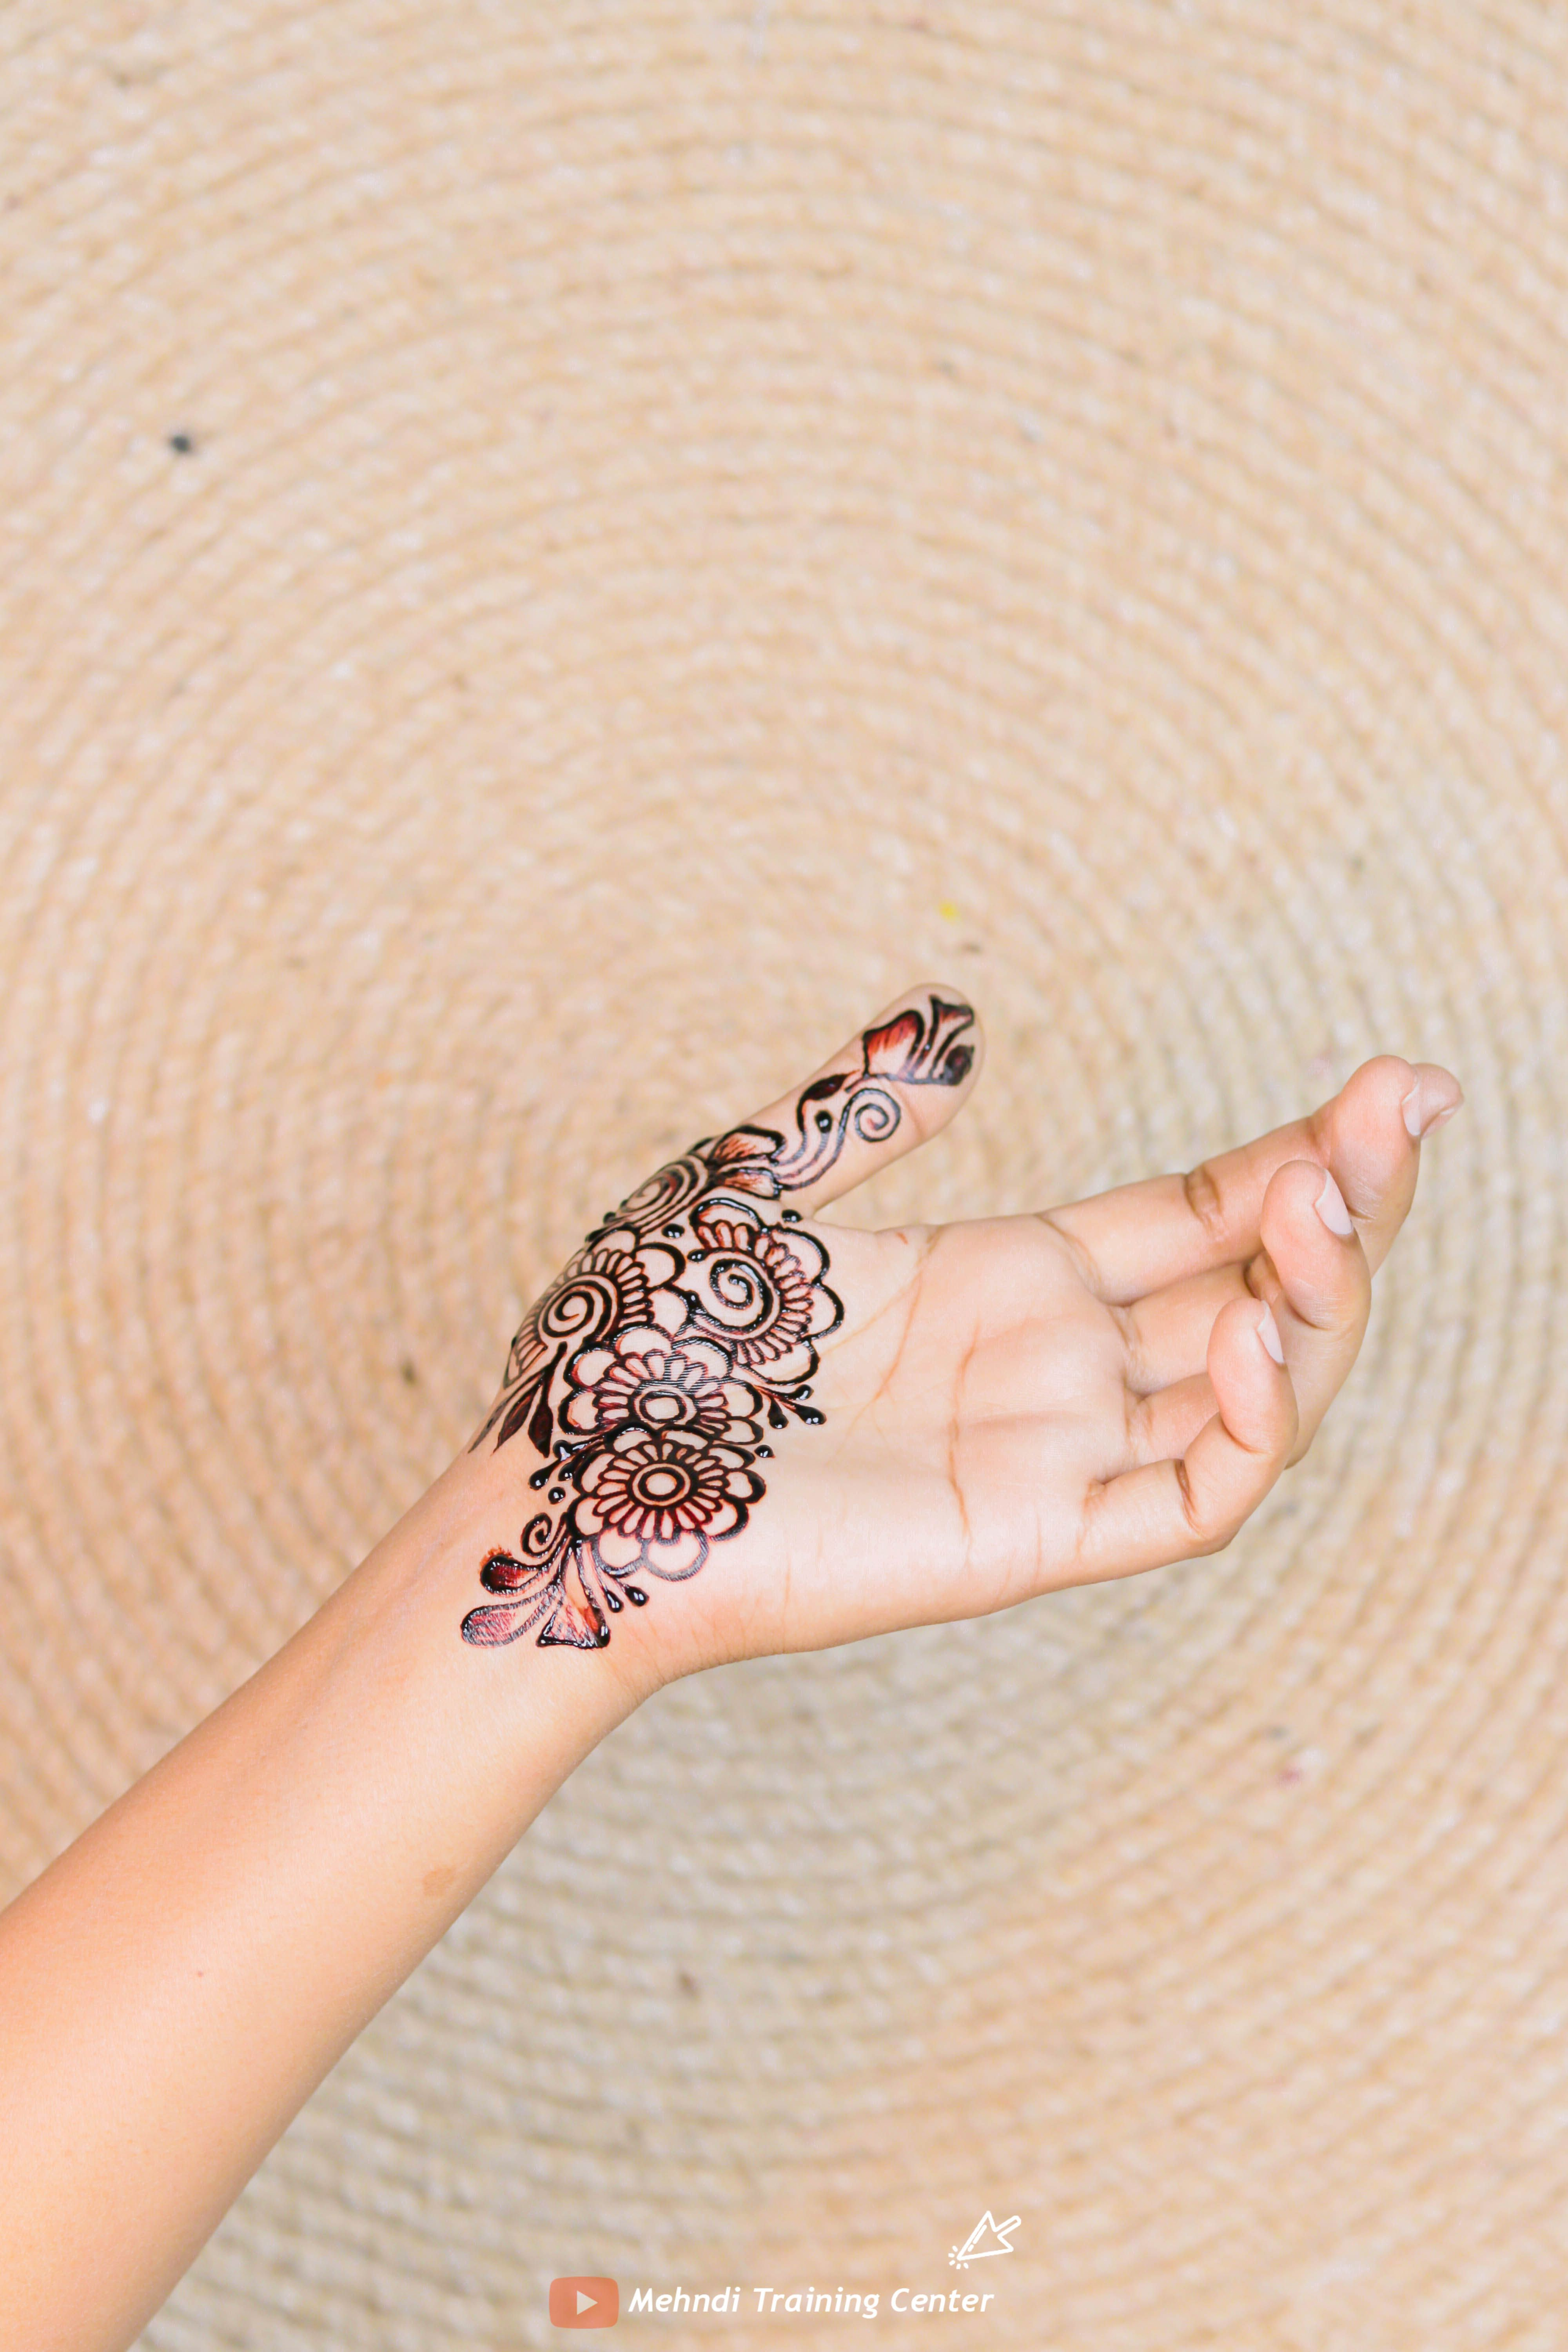 Simple And Easy Front Hand Thumb Mehndi Designs Thumb Mehndi Design For Simple And Easy Front Hand In 2020 Mehndi Designs Hand Tattoos Mehndi